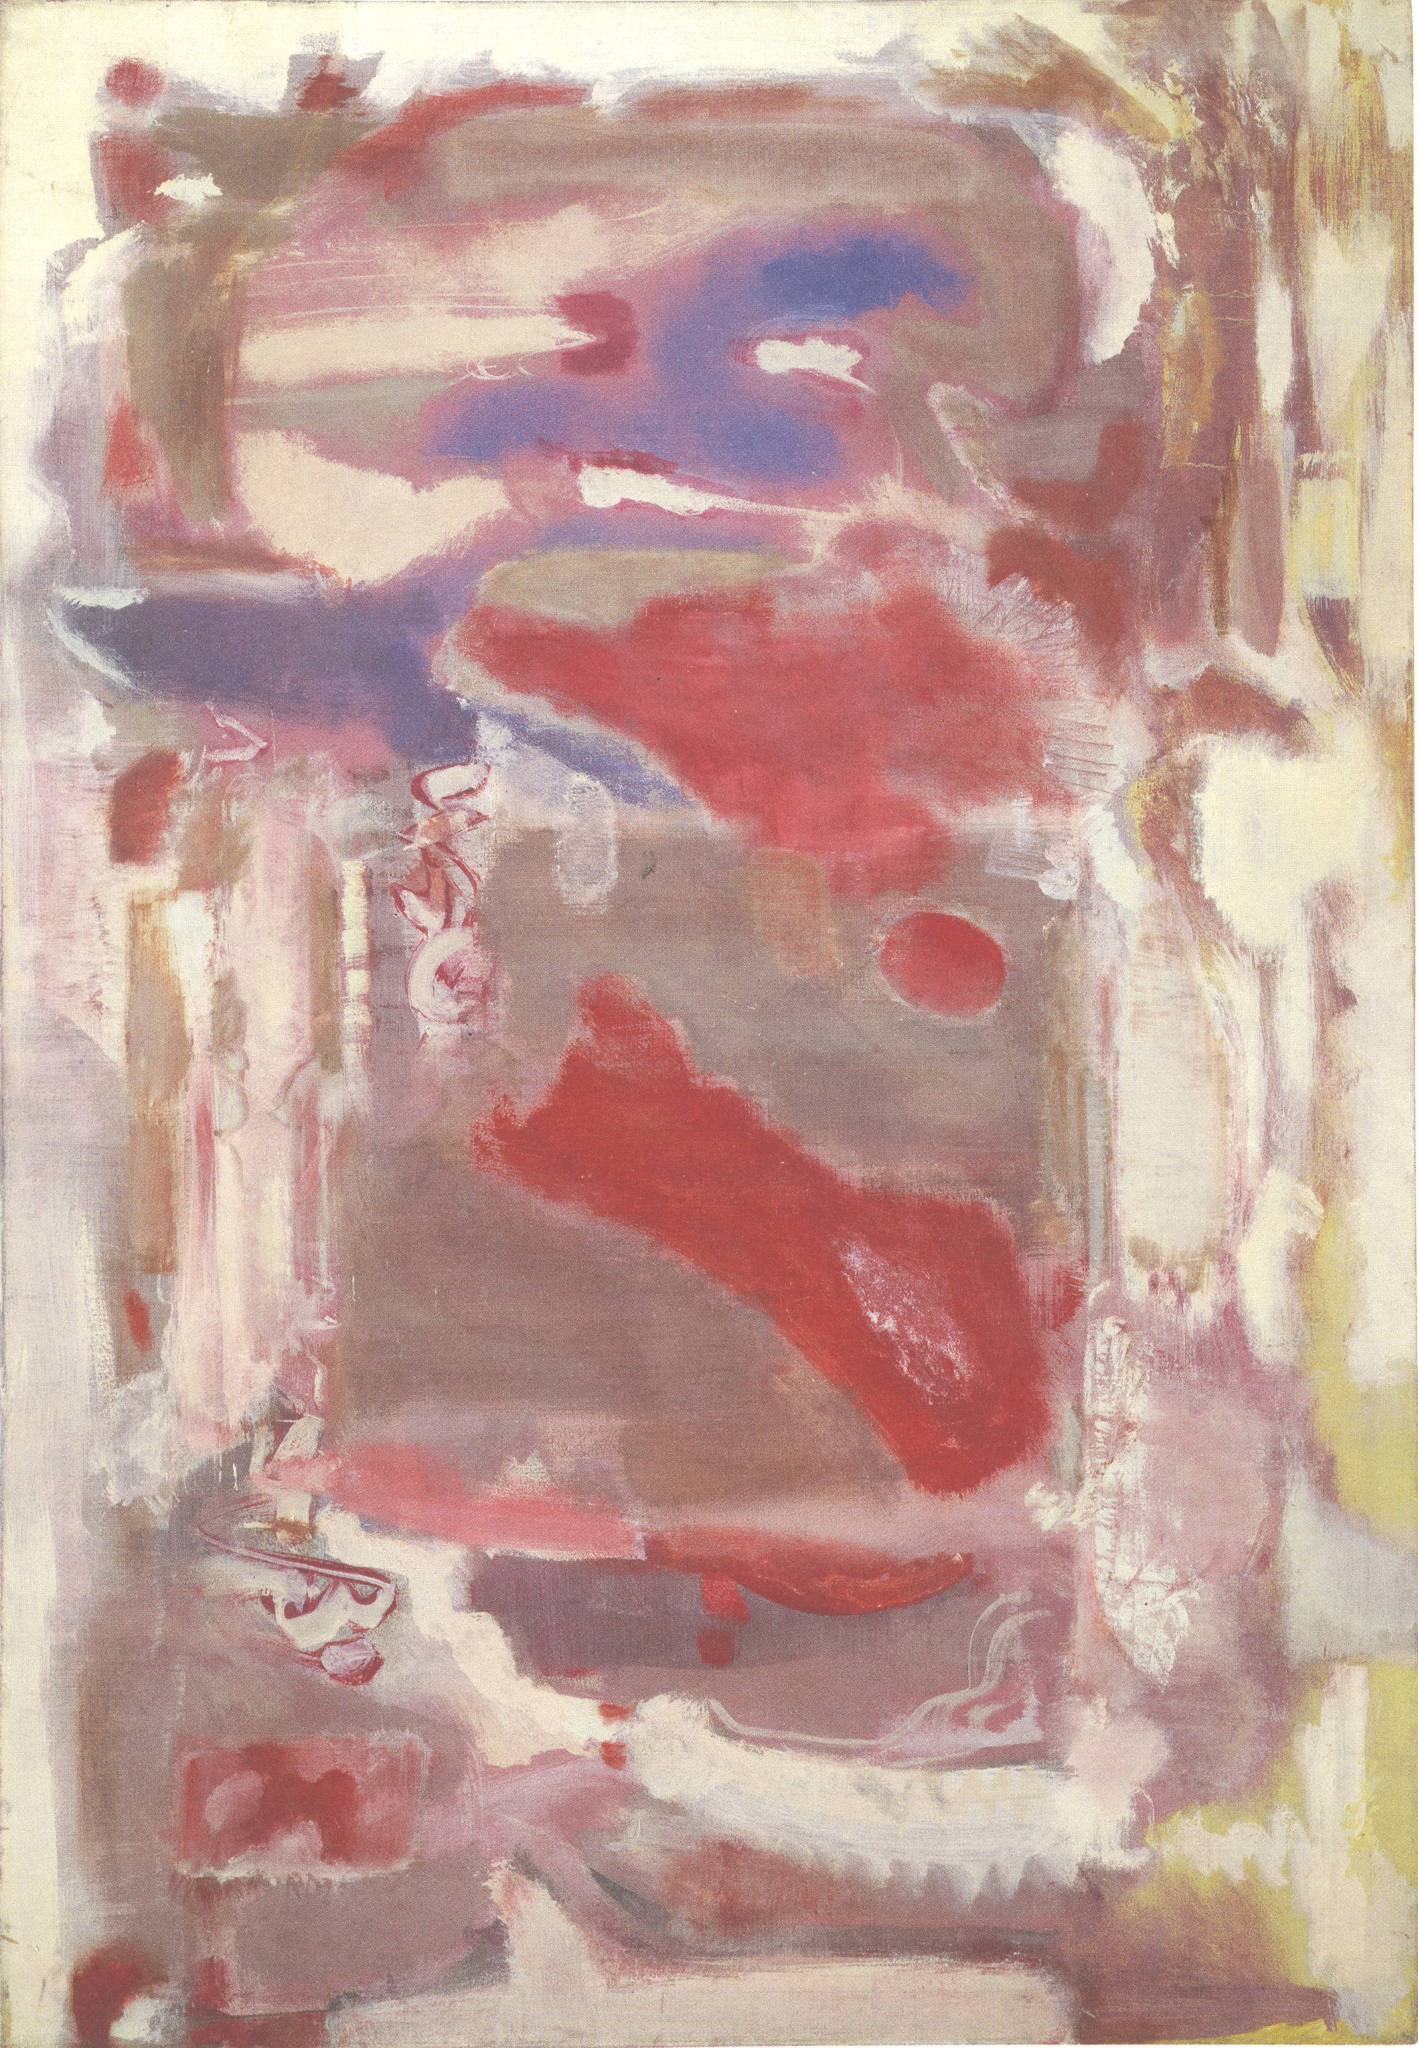 No. 18,  Mark Rothko, 1946, oil on canvas, 155 x 110 cm